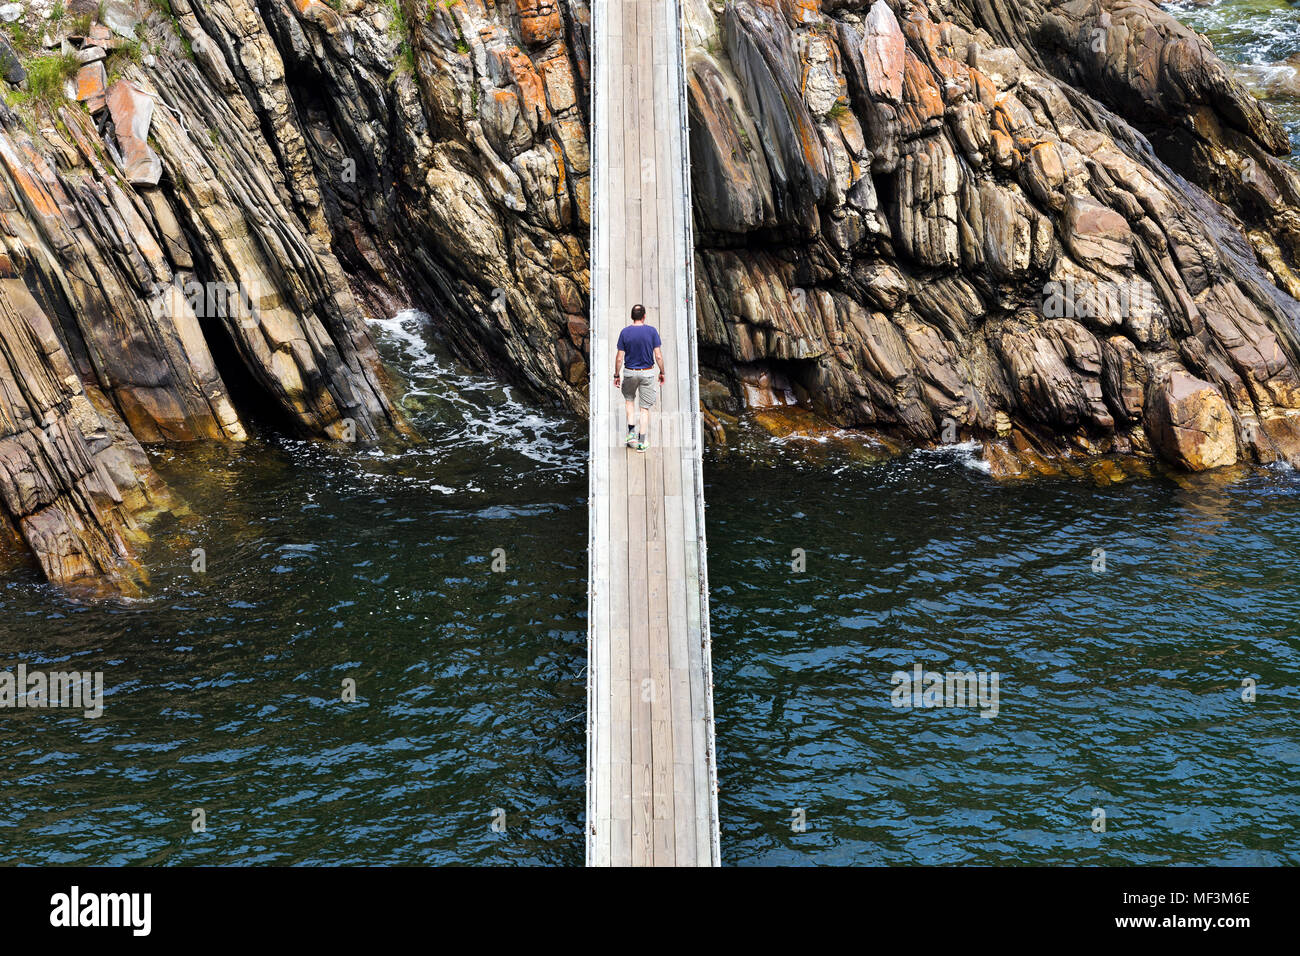 Africa, South Africa, Western Cape, Paarl, Garden Route National Park, Tsitsikamma National Park, man walking on wooden bridge - Stock Image